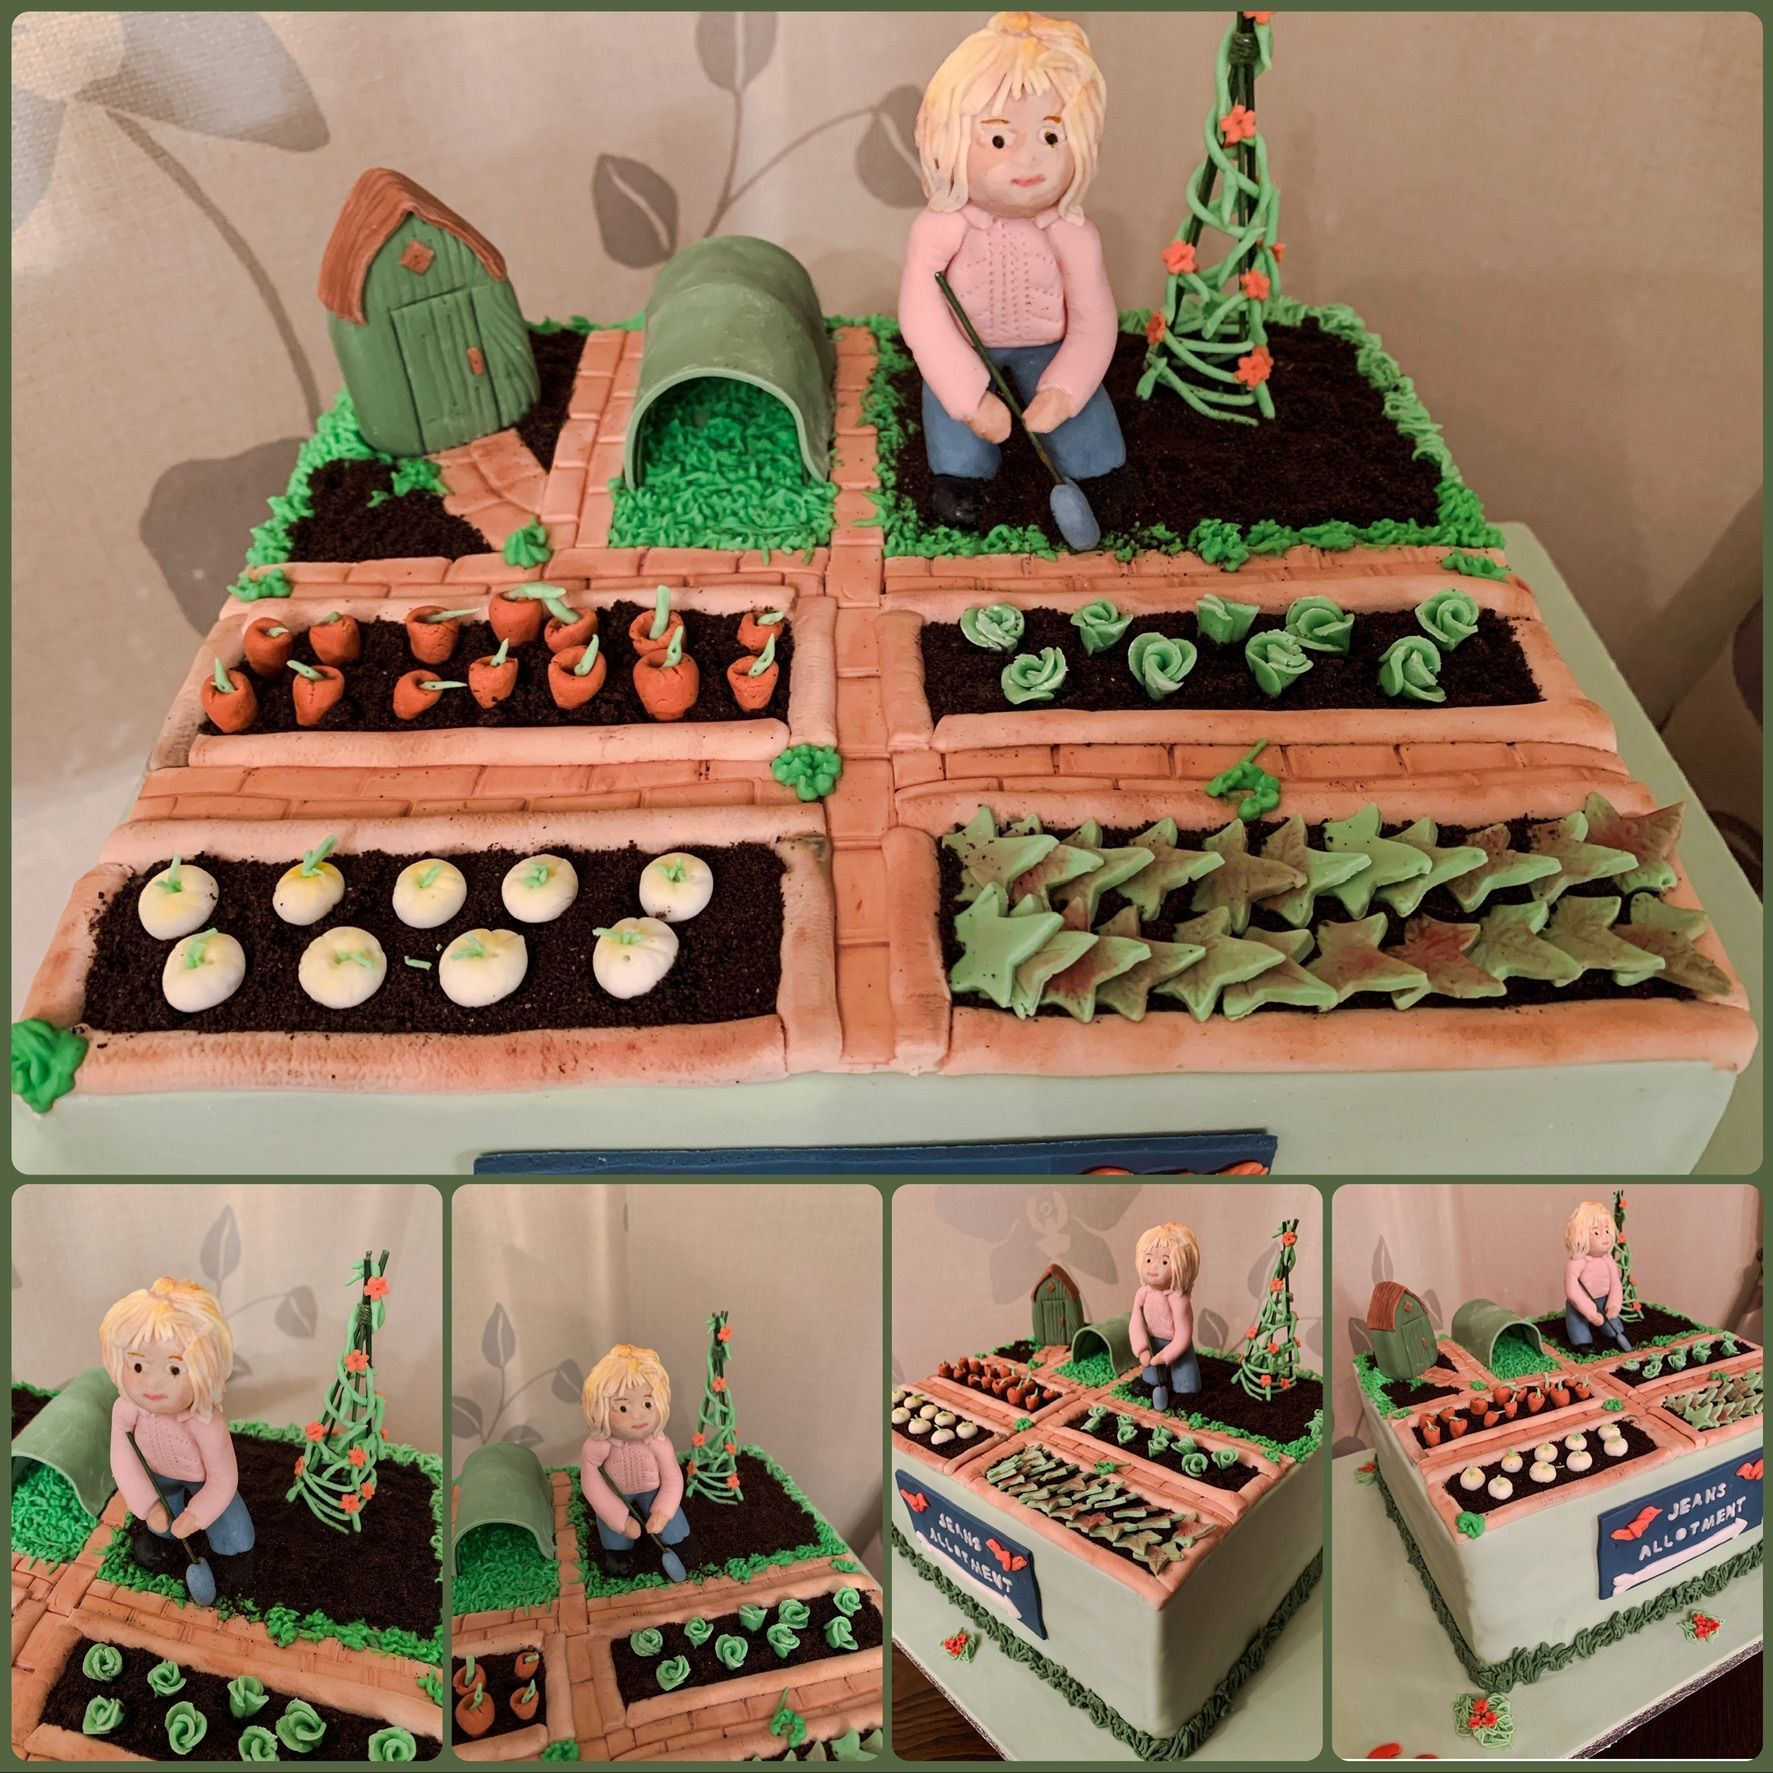 allotment cake collage